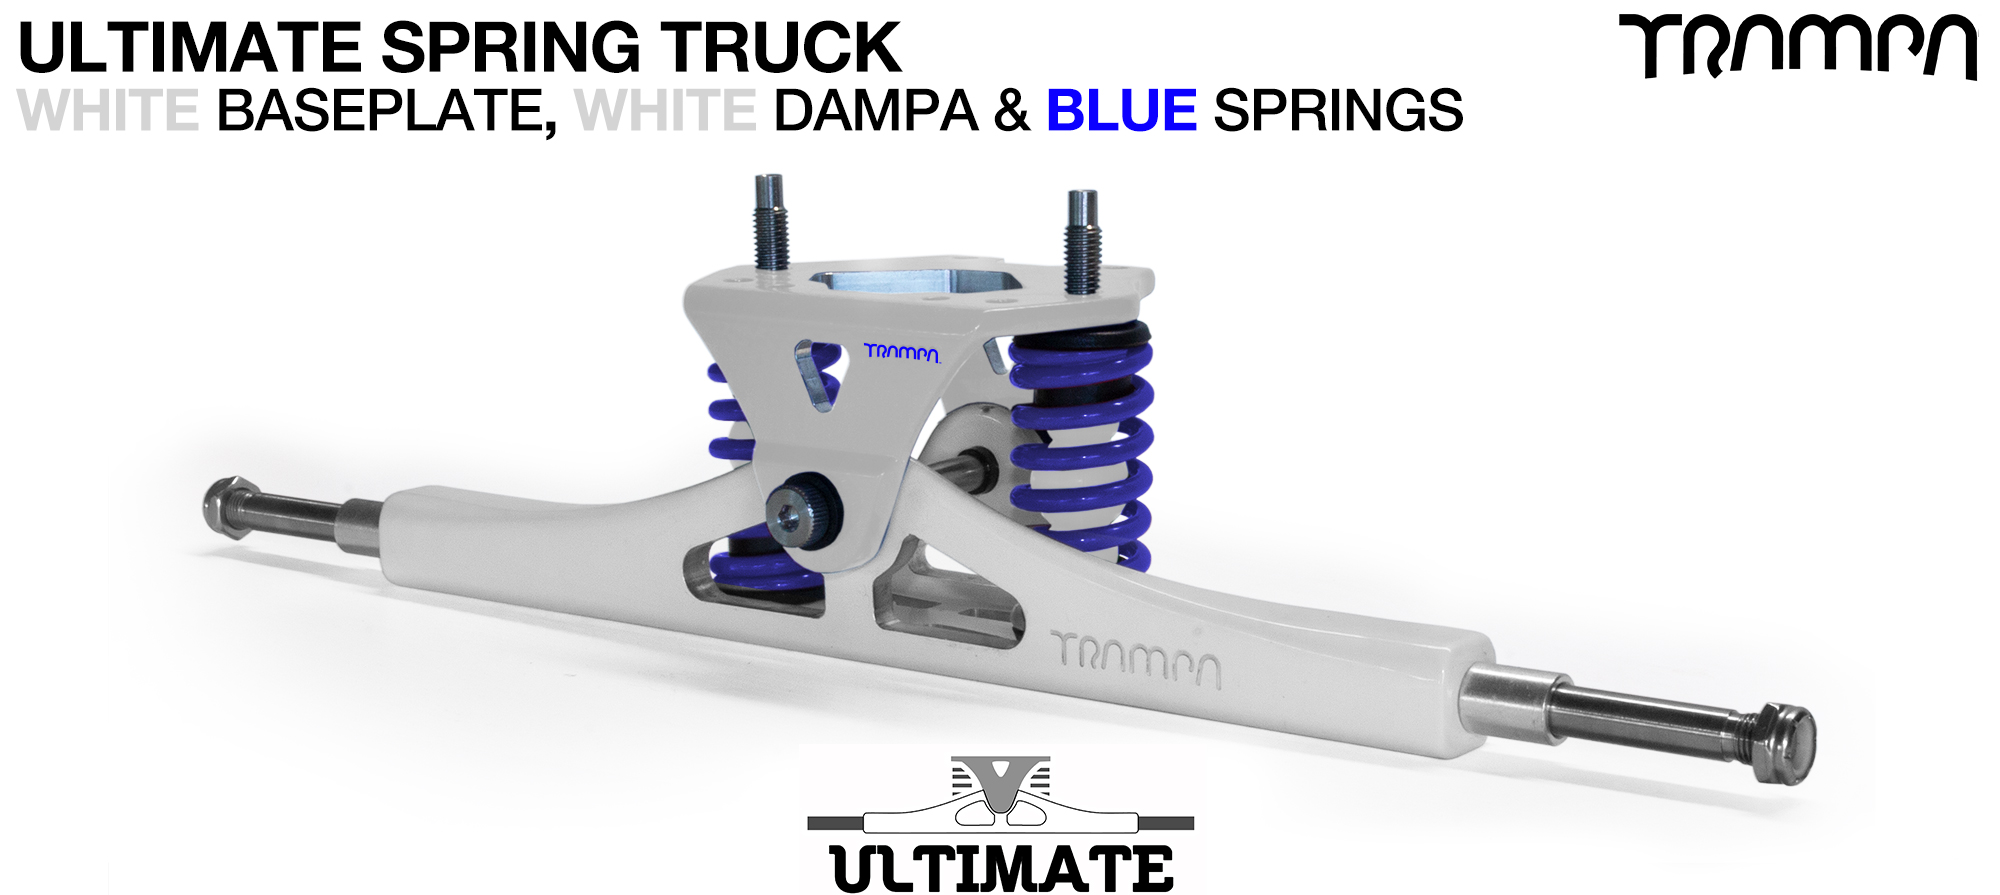 ULTIMATE Truck - WHITE & BLUE logo Baseplate on White TITANIUM Axles & Kingpin